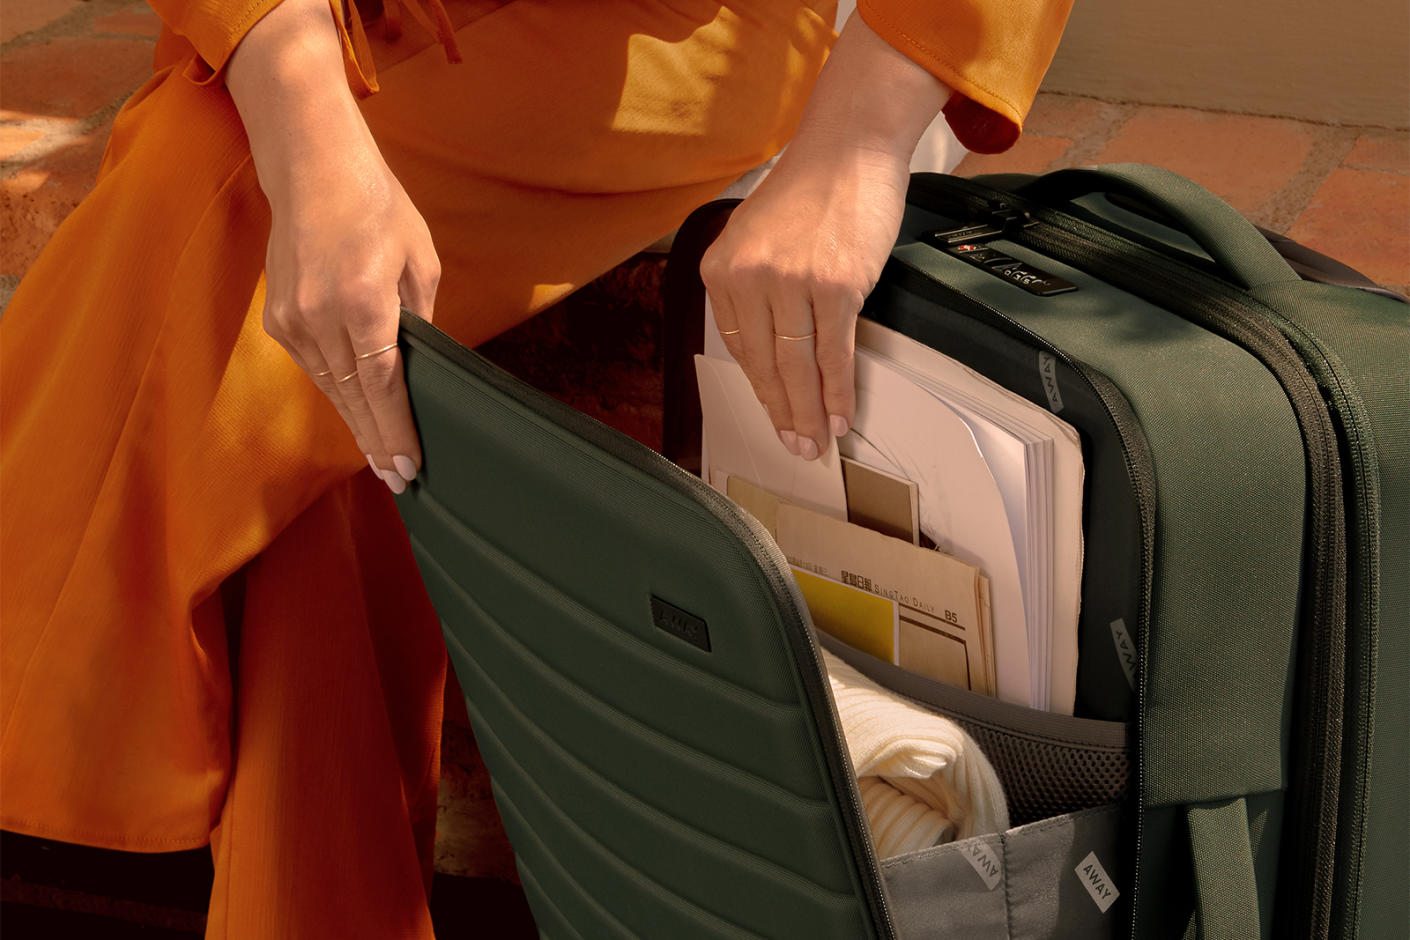 A woman using her hands to browse through the documents in the front pocket of her green softsided carry-on suitcase.